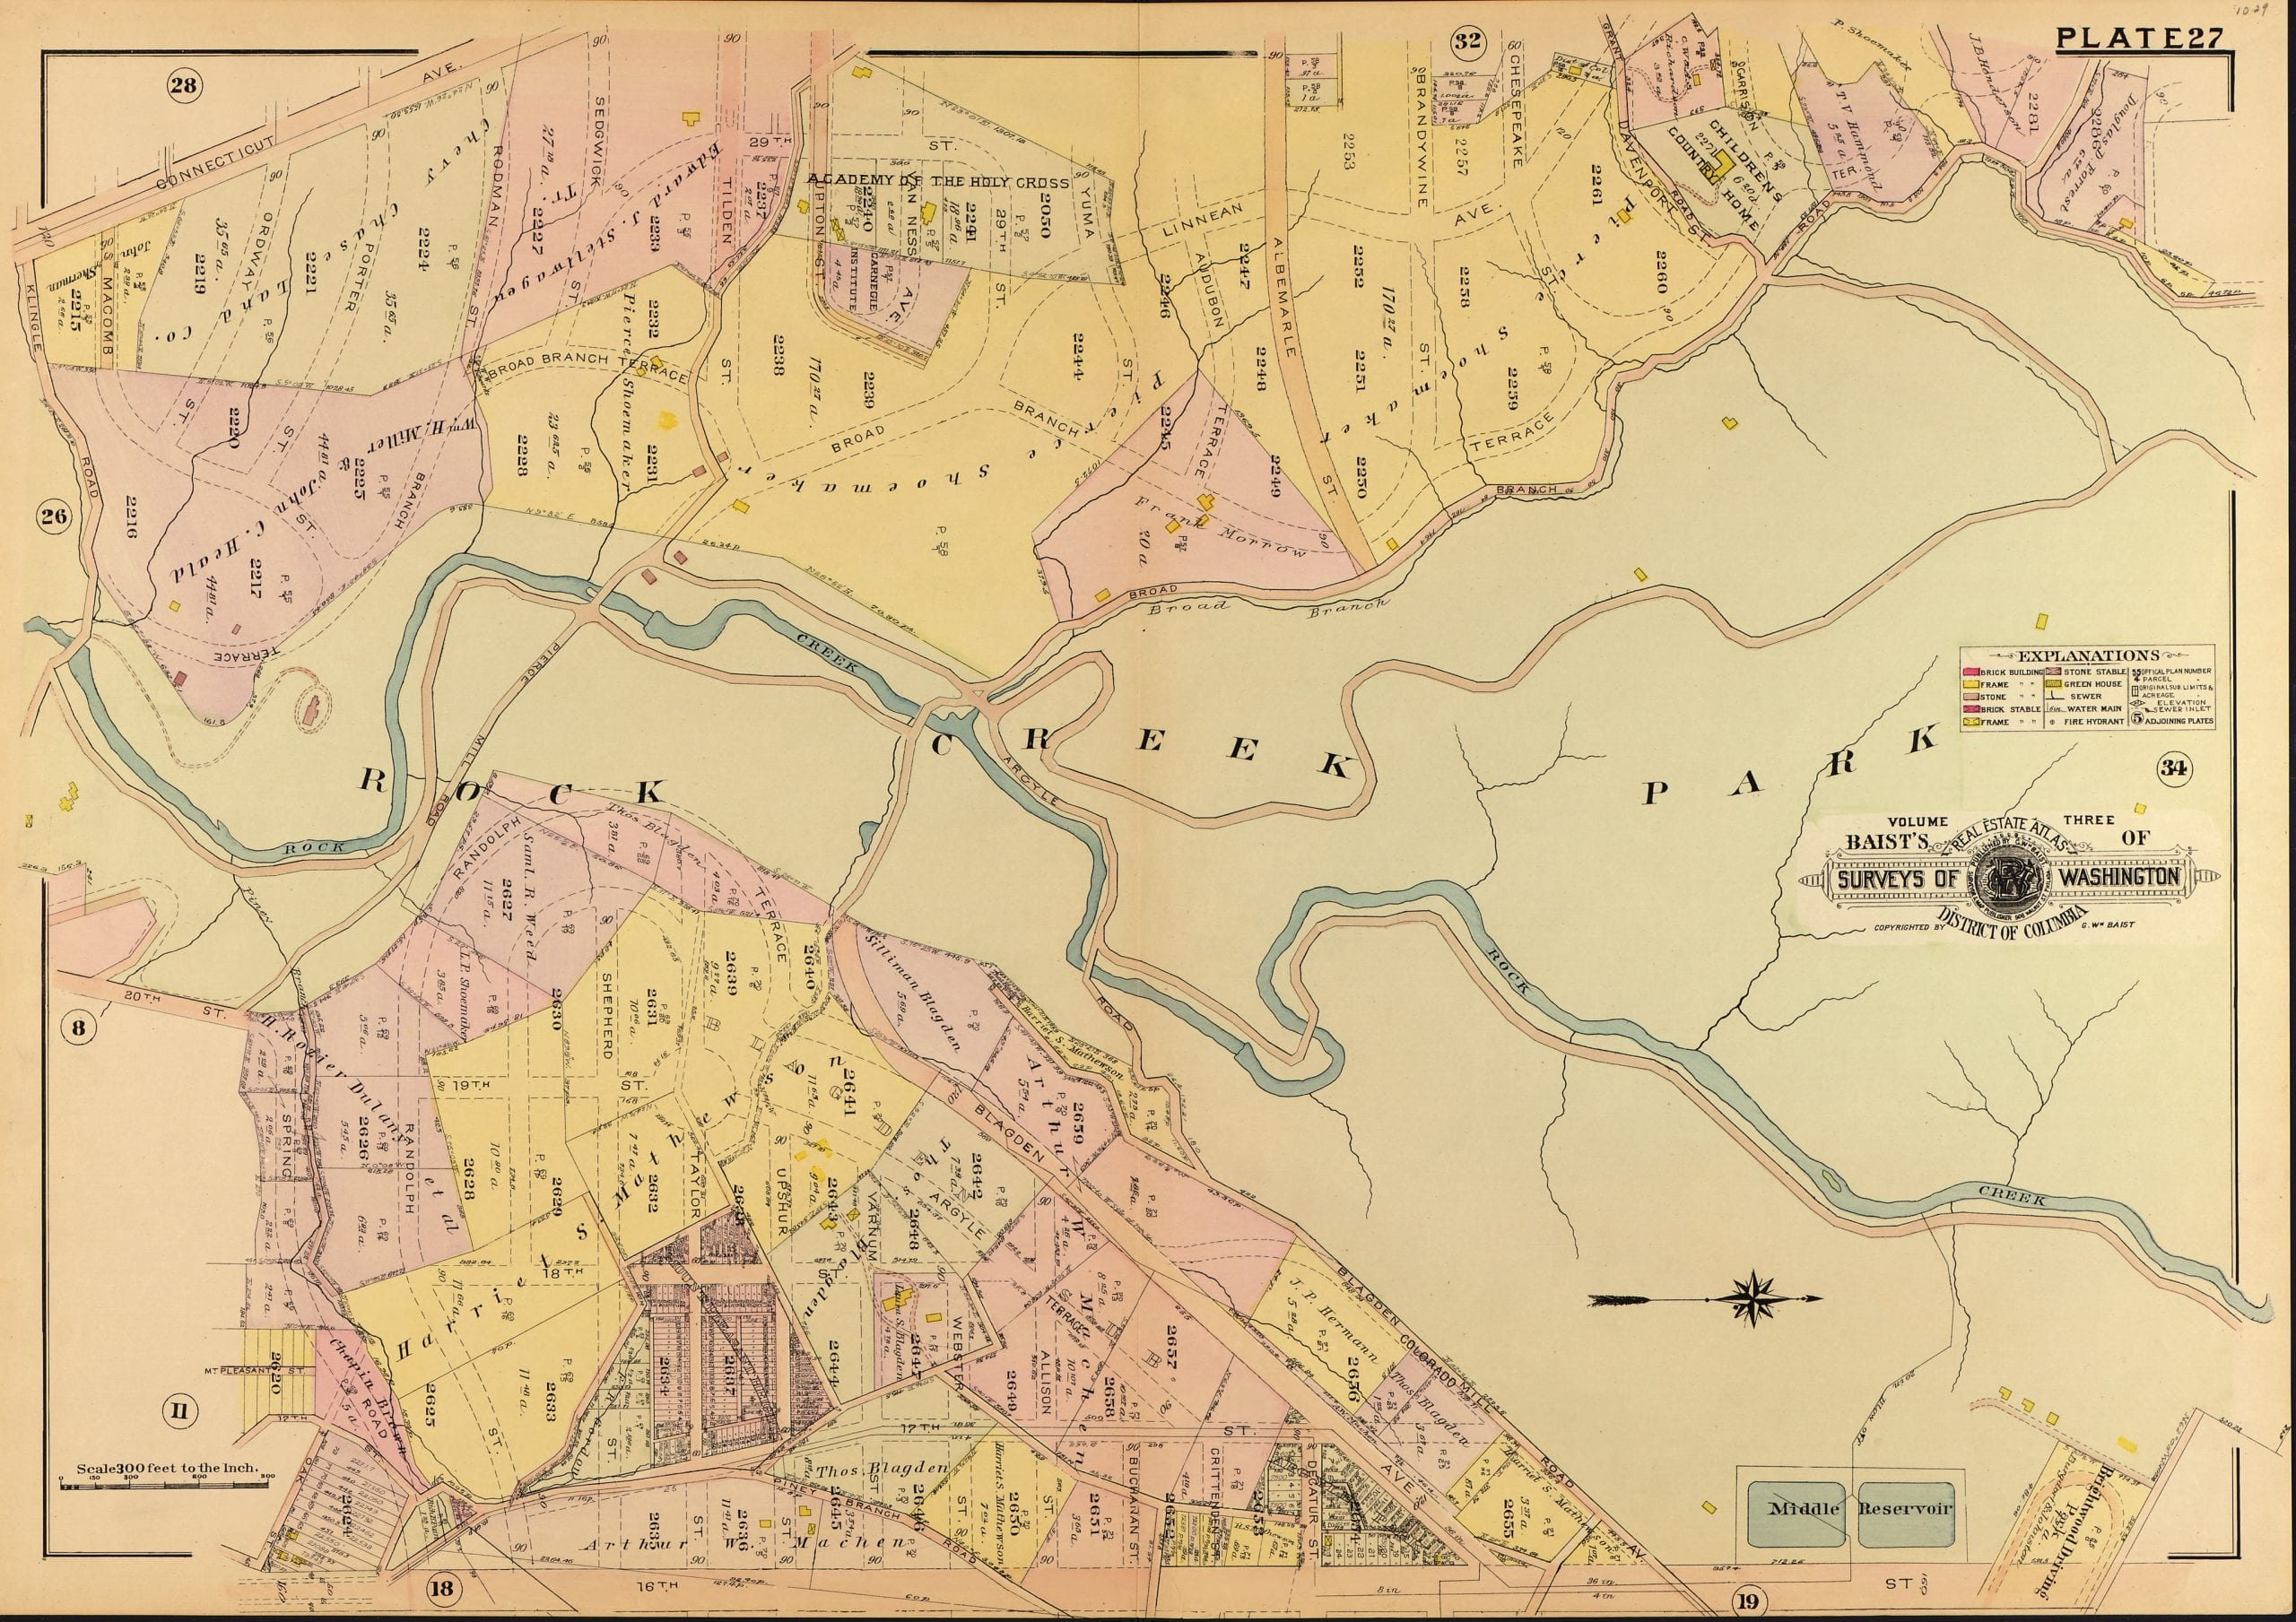 1907 map of Rock Creek Park